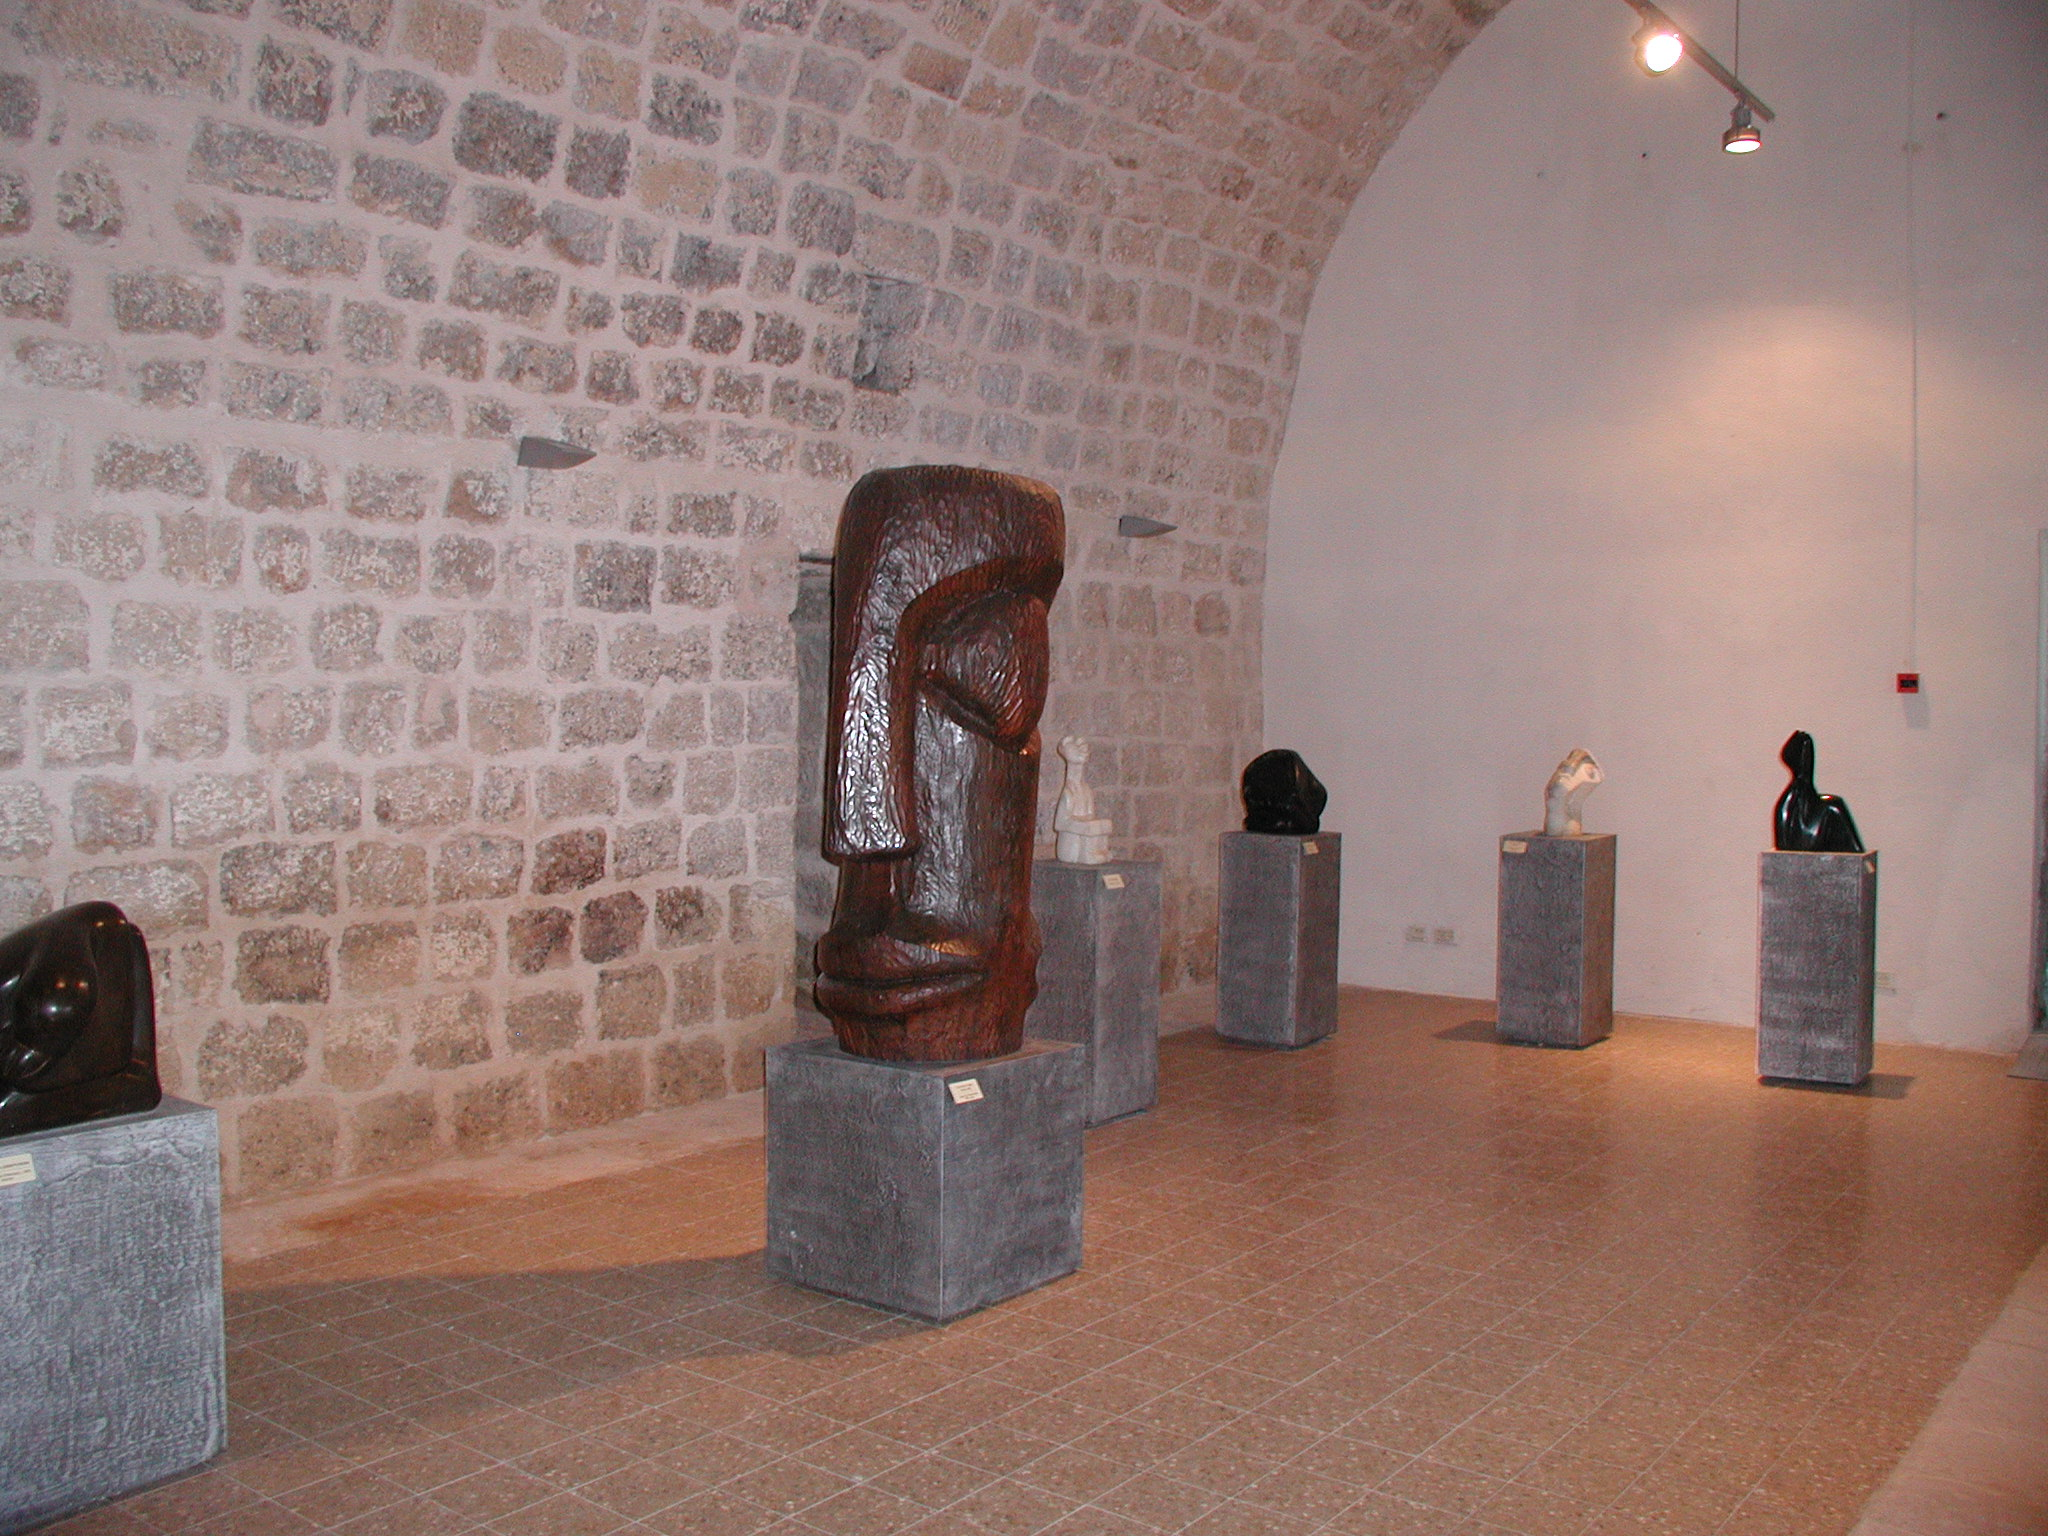 Sculpture inside the exhibition hall